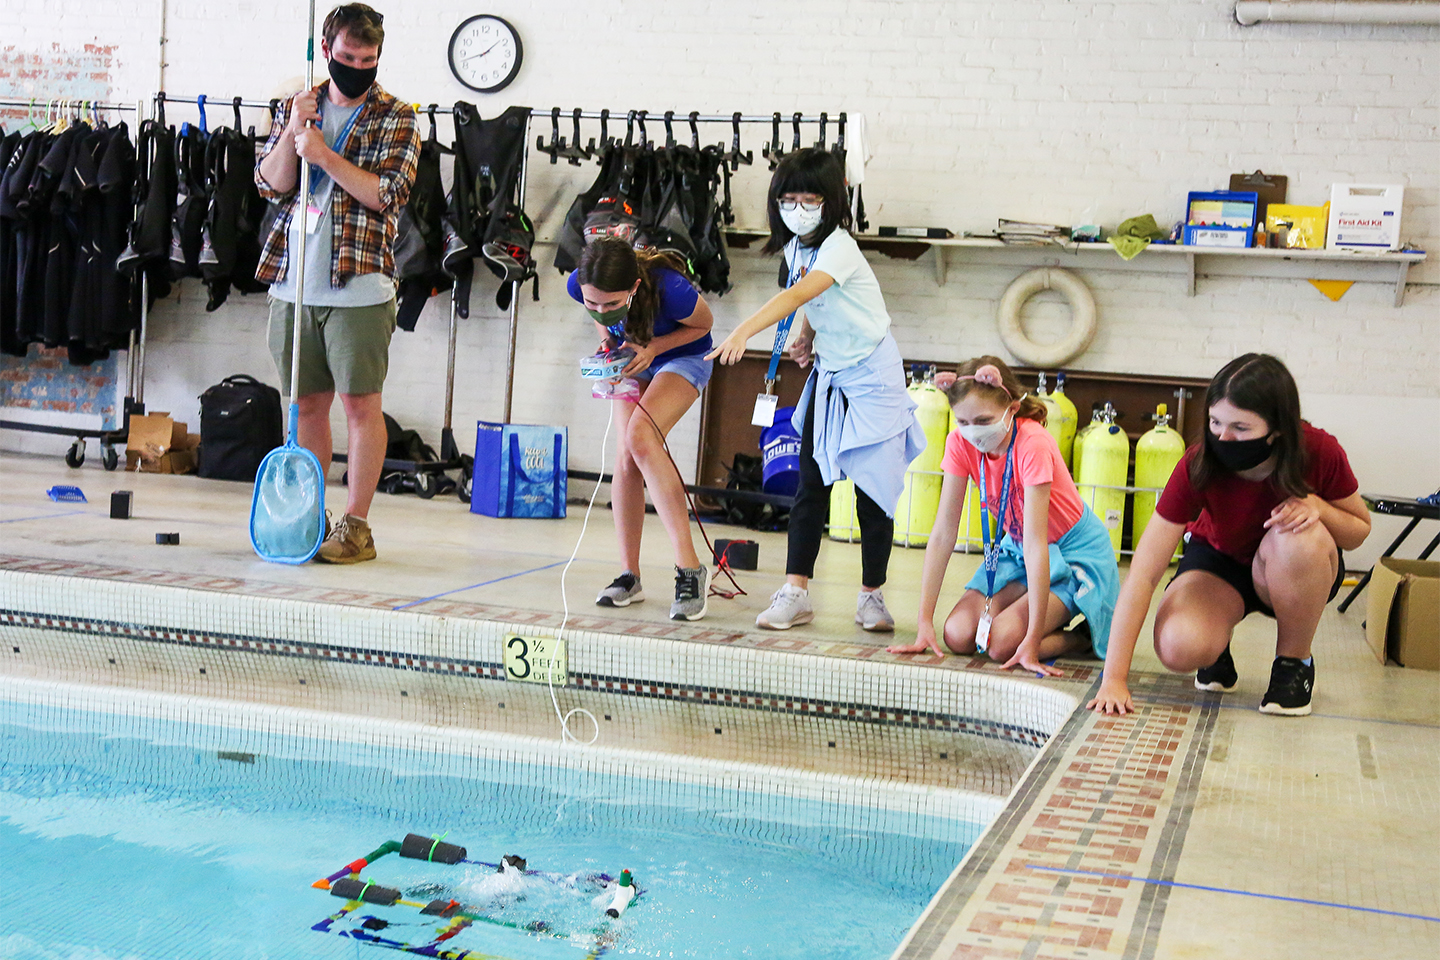 A group of students stand beside a pool while operating a robot in the water